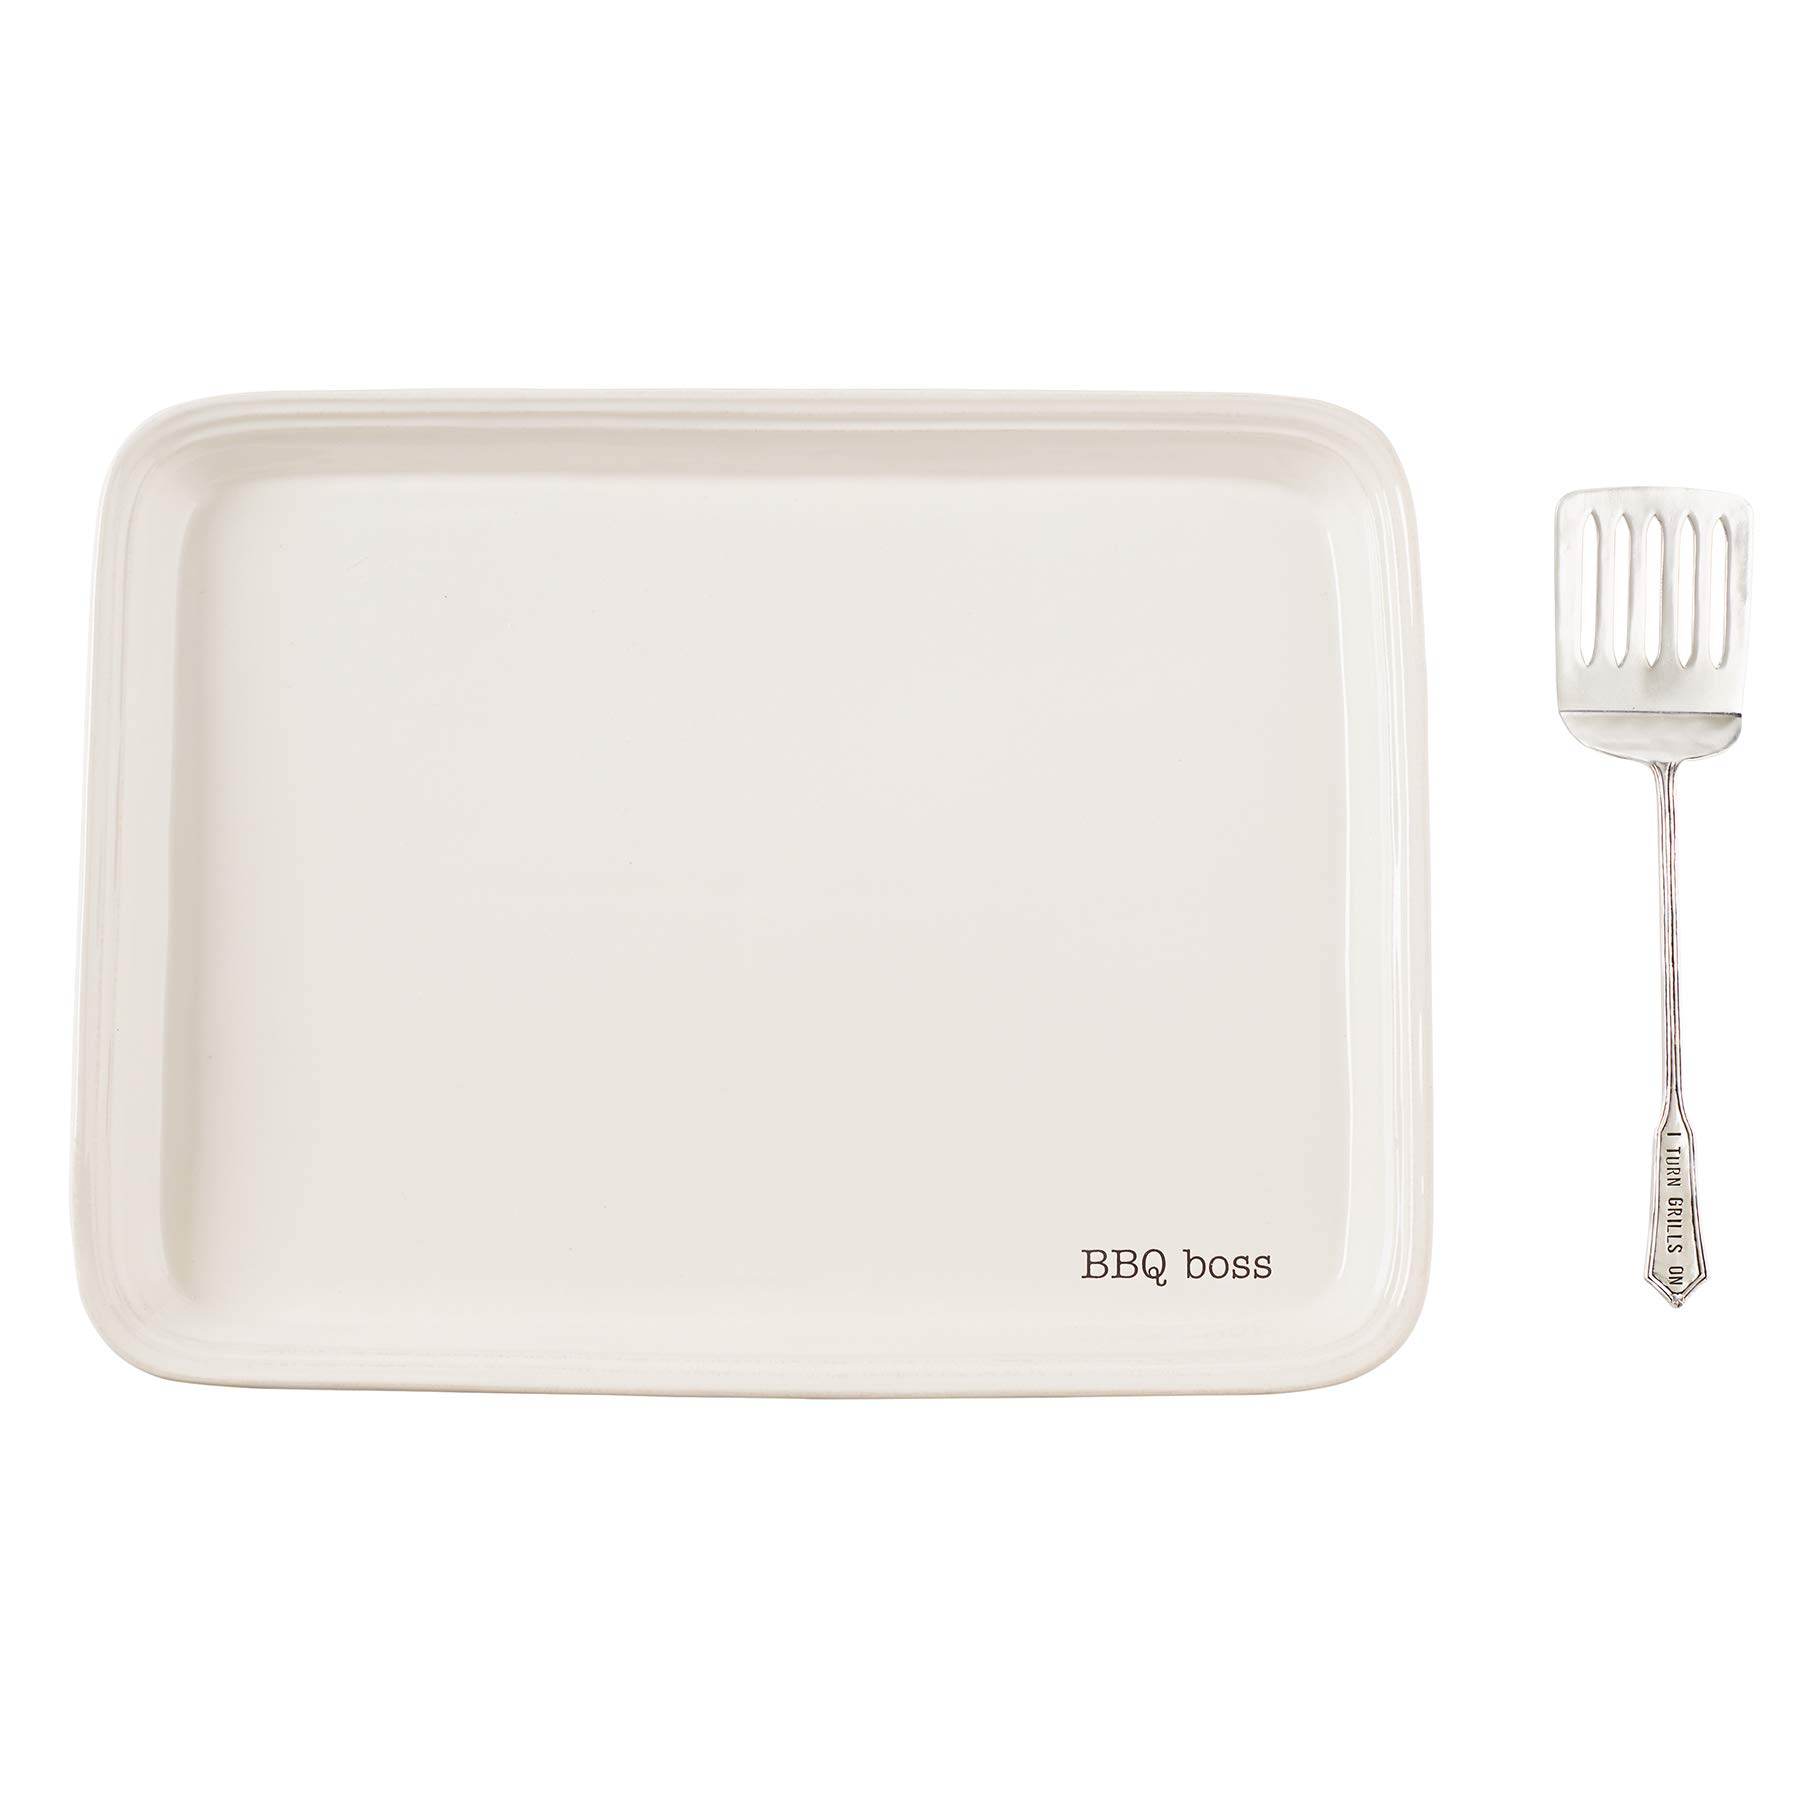 Mud Pie 40700096 Grill BBQ Boss Serving Platter Set, One Size, White